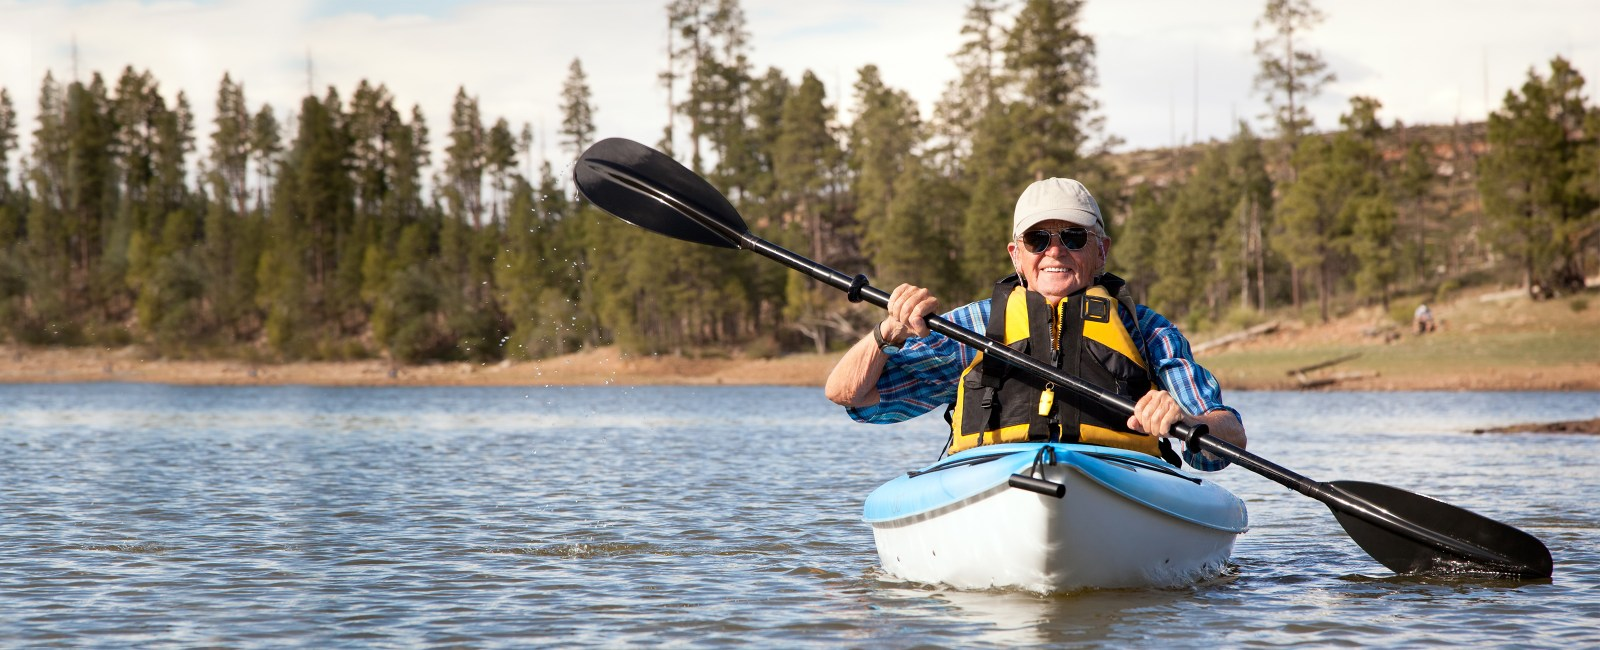 mature man kayaking on the river